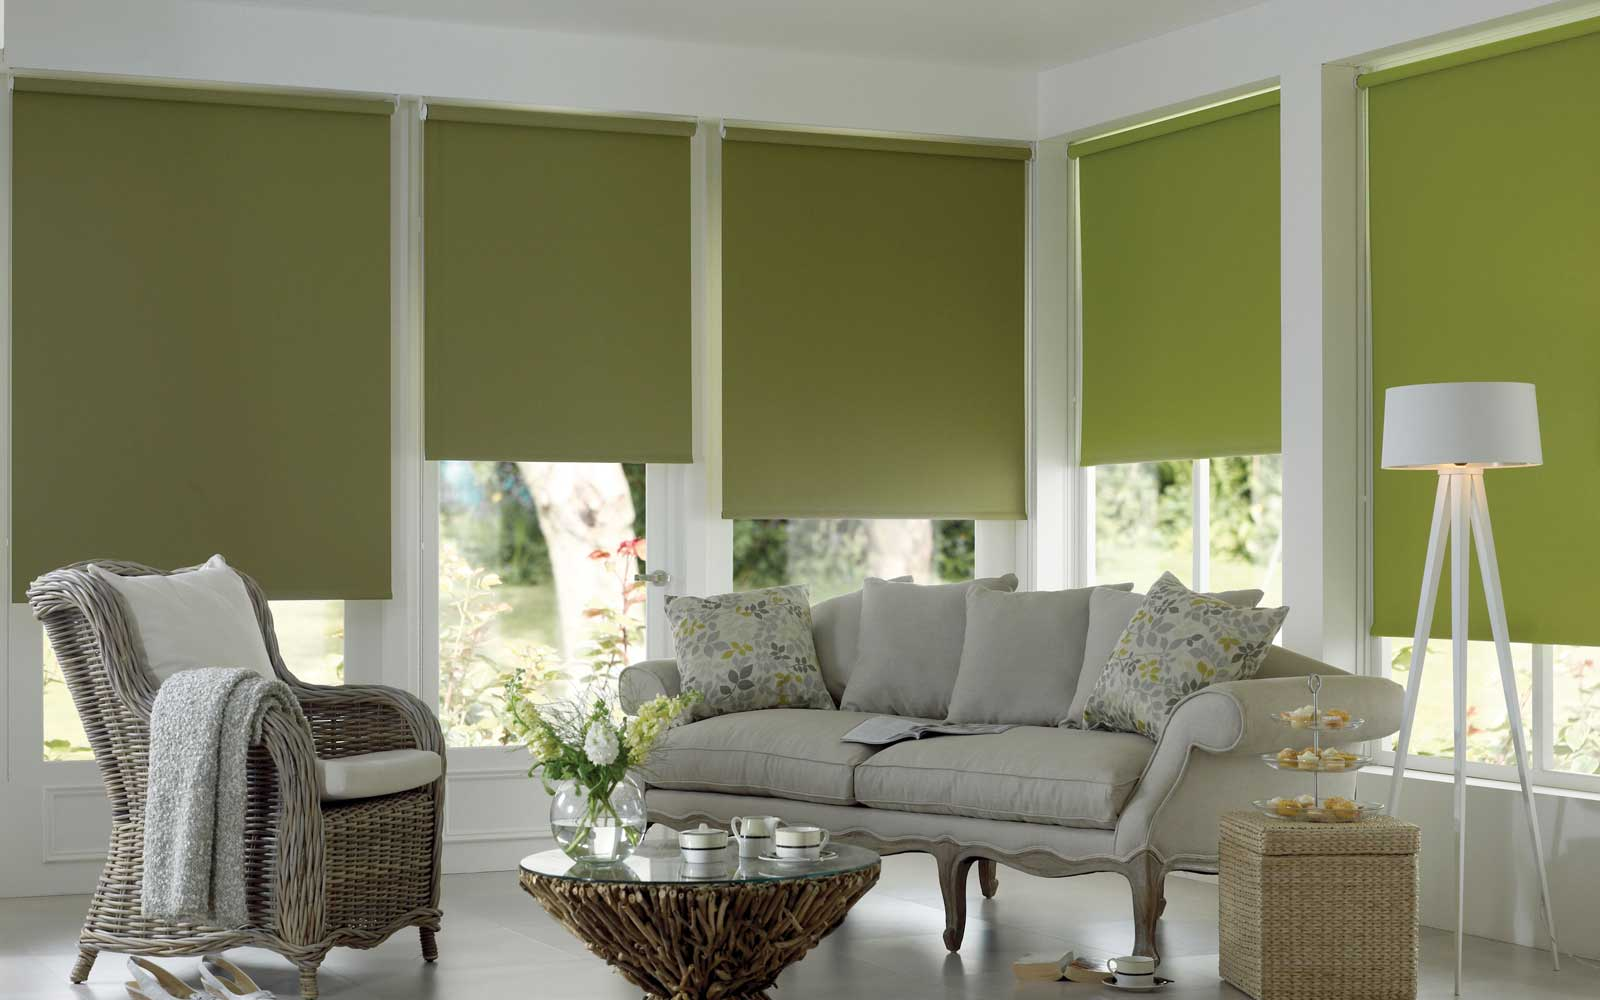 roller blinds in a living room